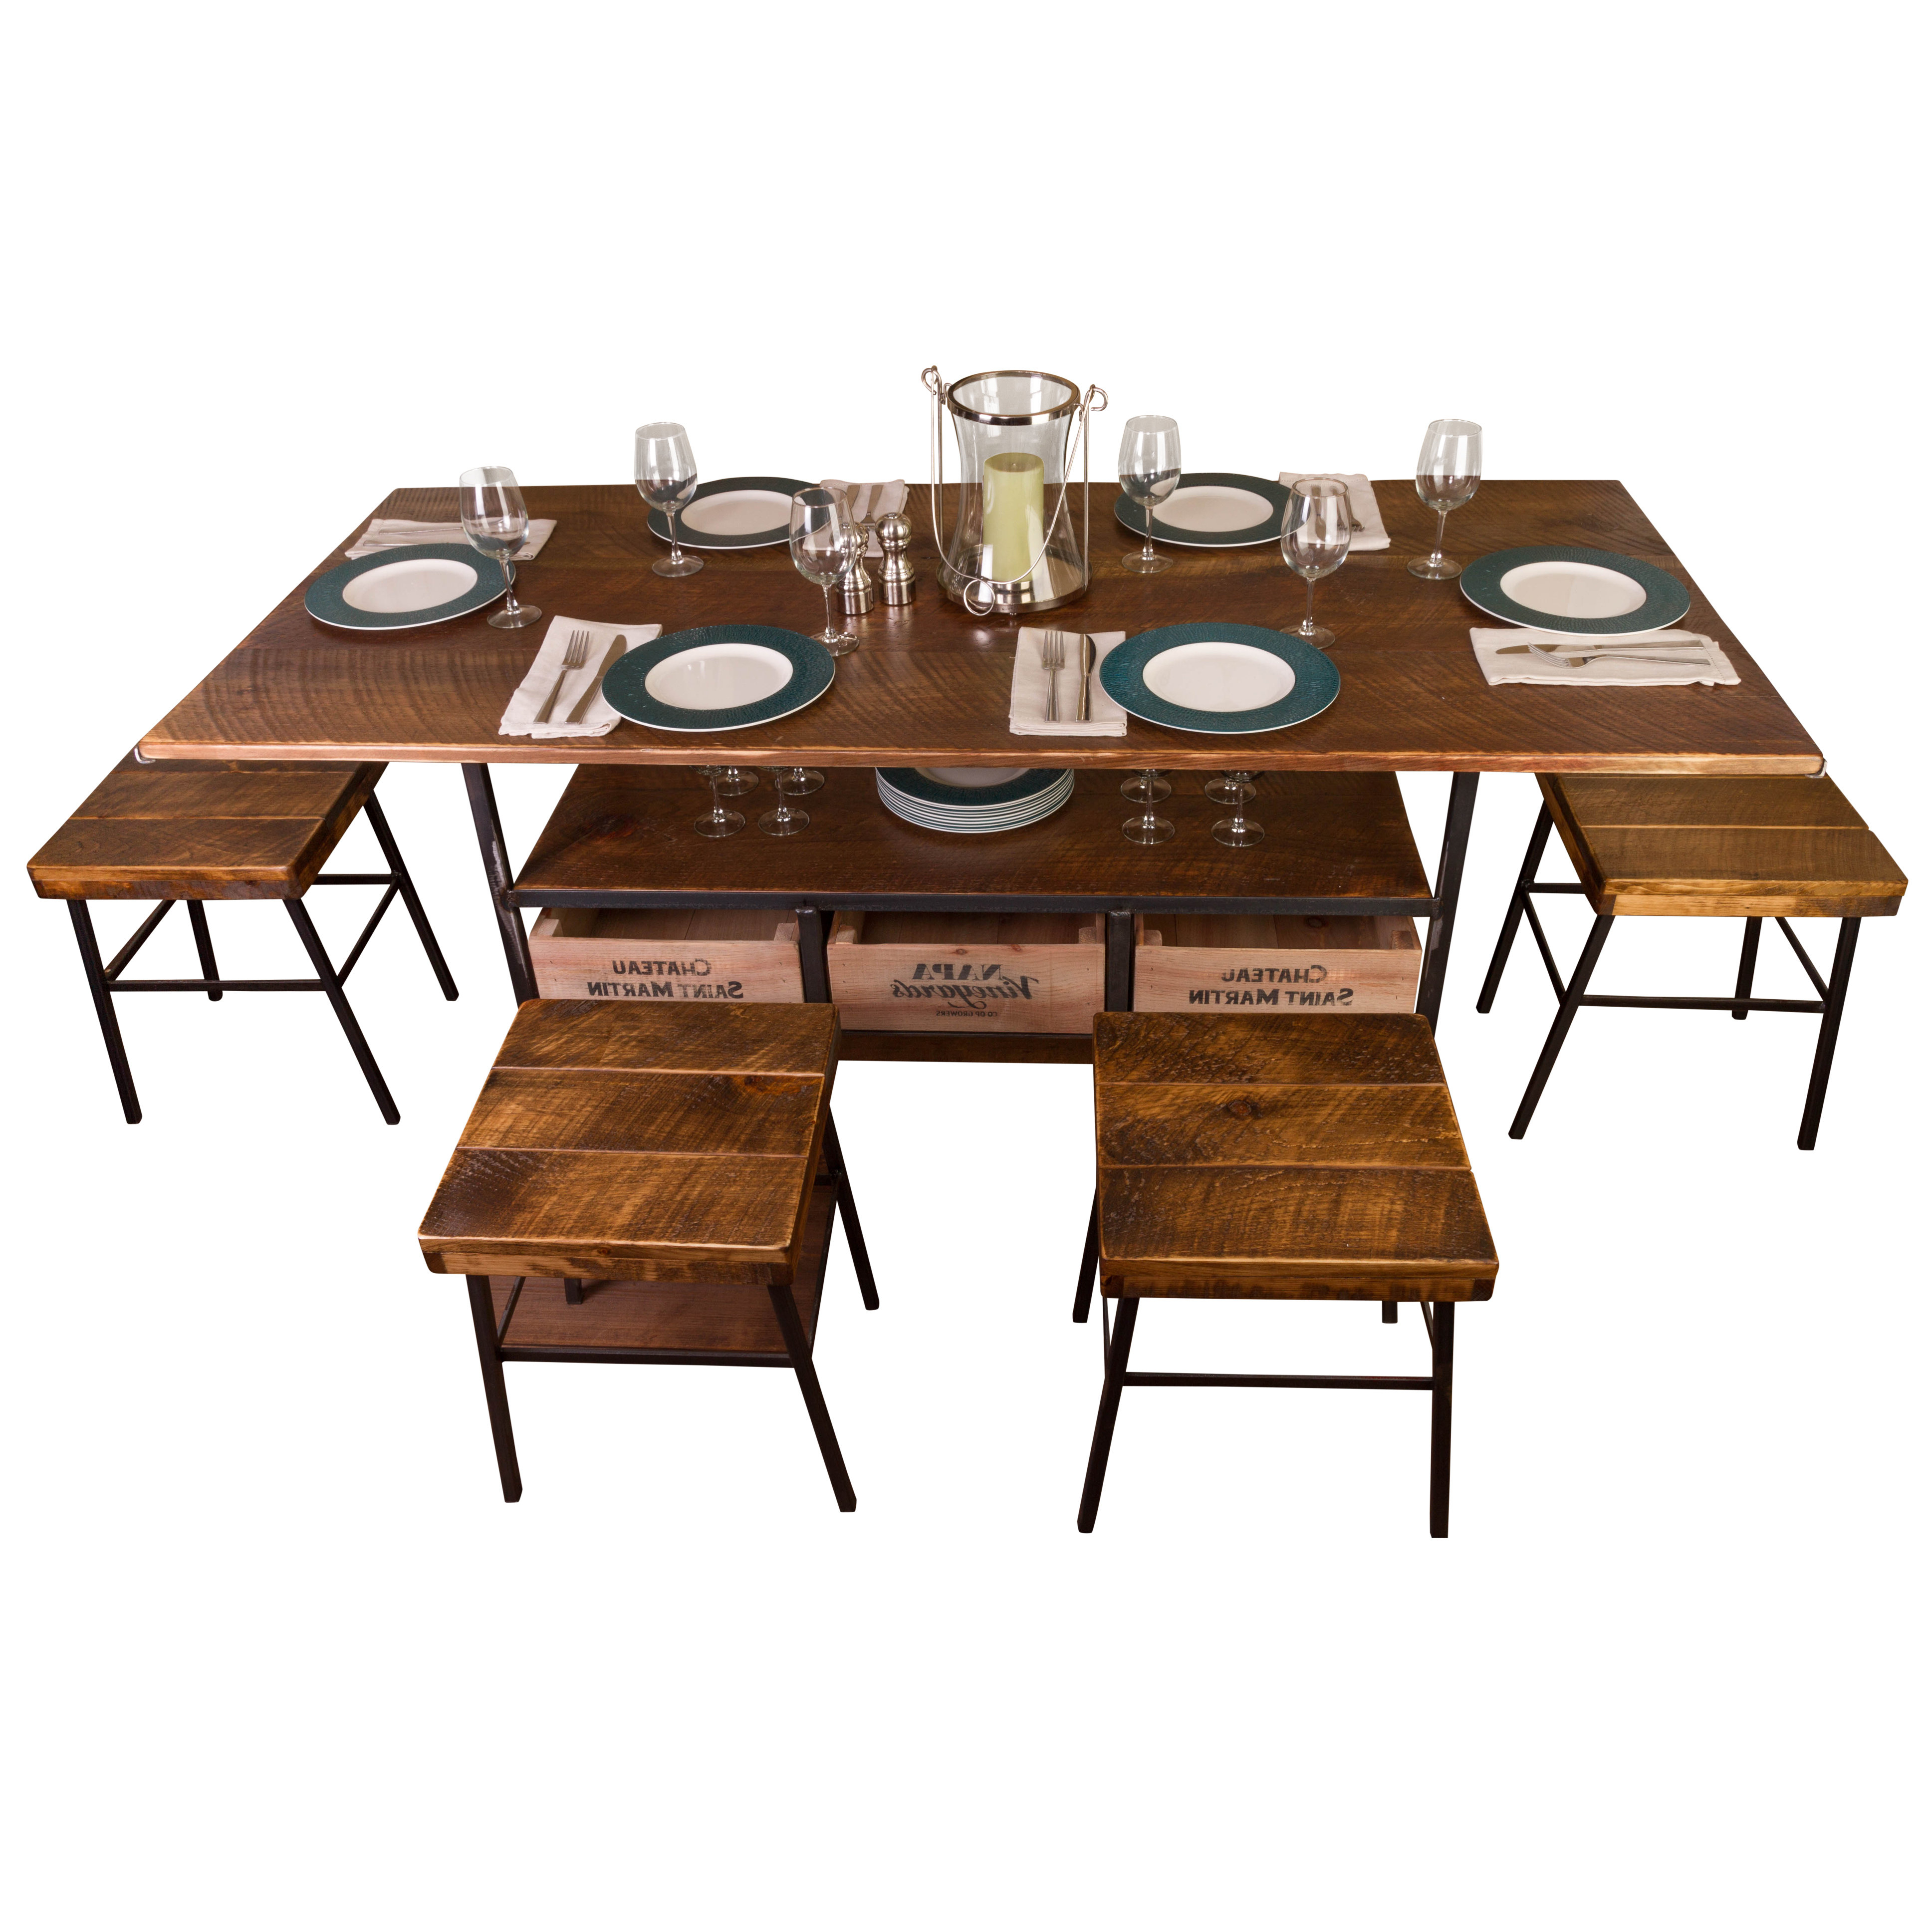 Best And Newest Shepparton Vintage 3 Piece Dining Sets With Vino Vintage Farm 7 Piece Dining Table (View 7 of 25)